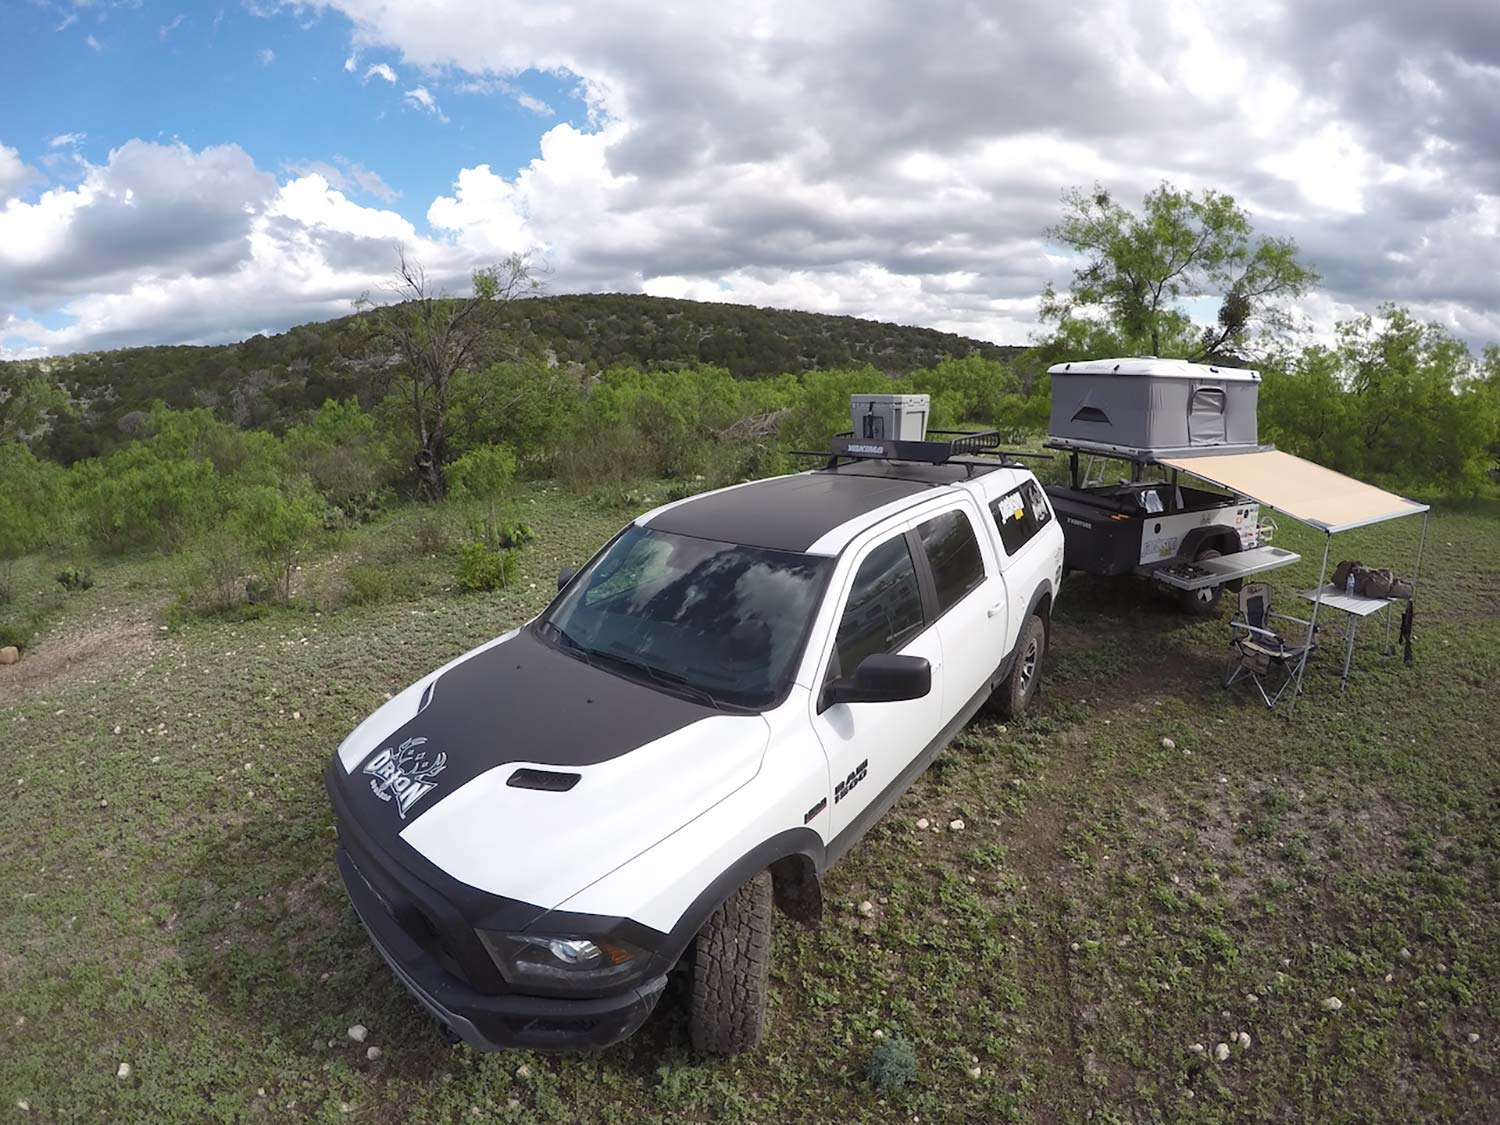 A white and black hunting vehicle next to a hunting camp.